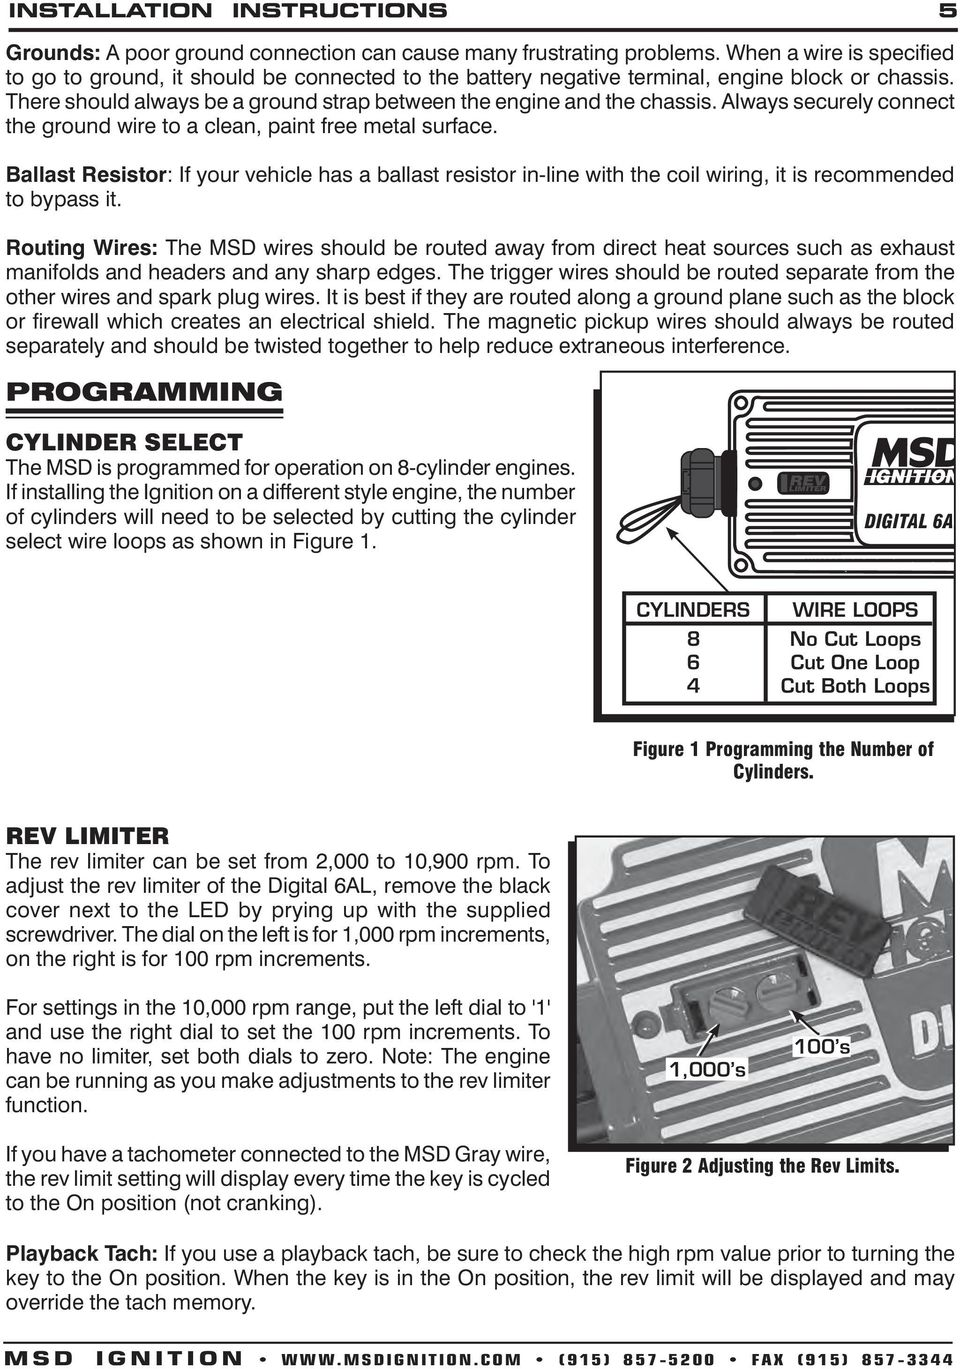 Msd Digital 6a And 6al Ignition Control Pn 6201 Pdf Mallory Wiring Diagram Kits Chevy Always Securely Connect The Ground Wire To A Clean Paint Free Metal Surface Ballast